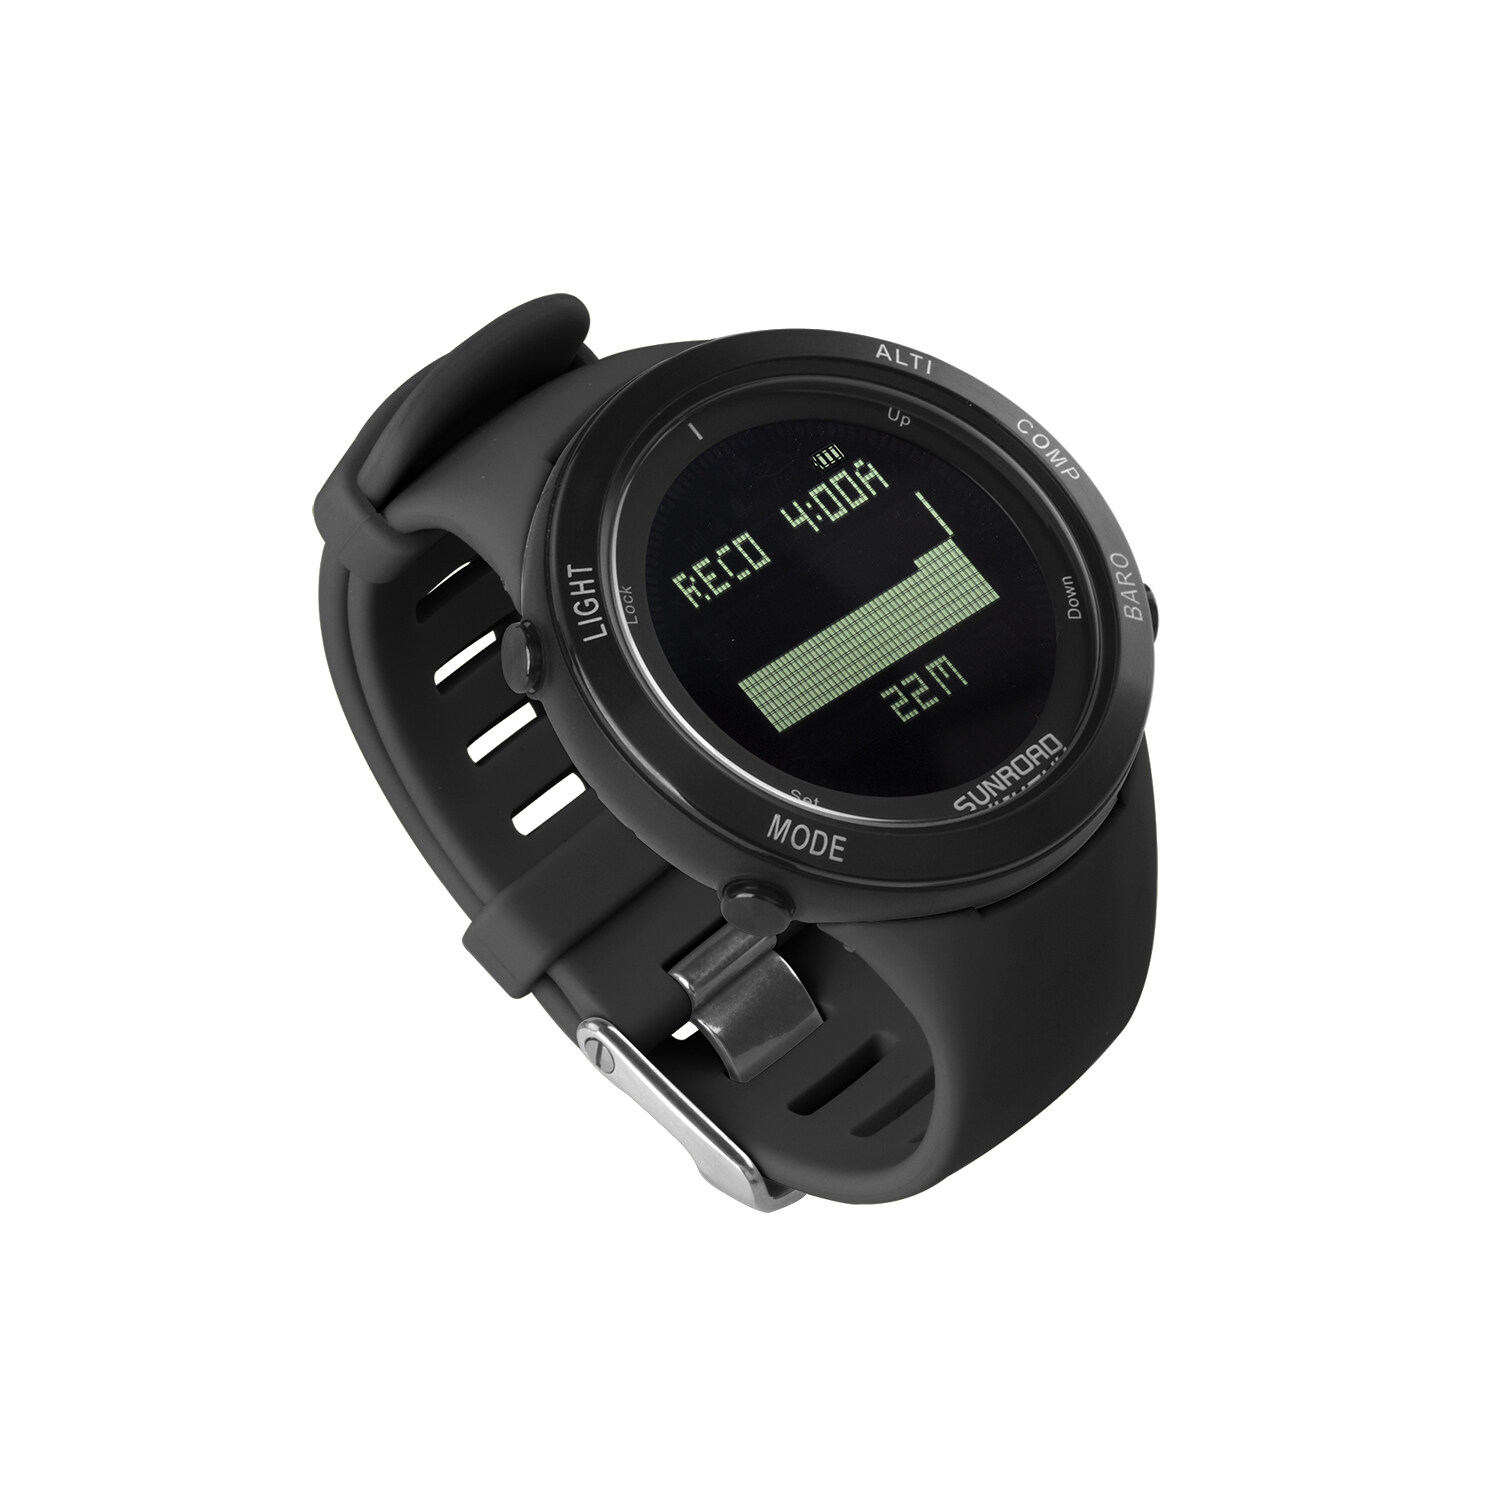 Sunroad heart rate outdoor sports watch with Pedometer, altimeter, climb data, hiking, camping, traveling watch waterproof 6